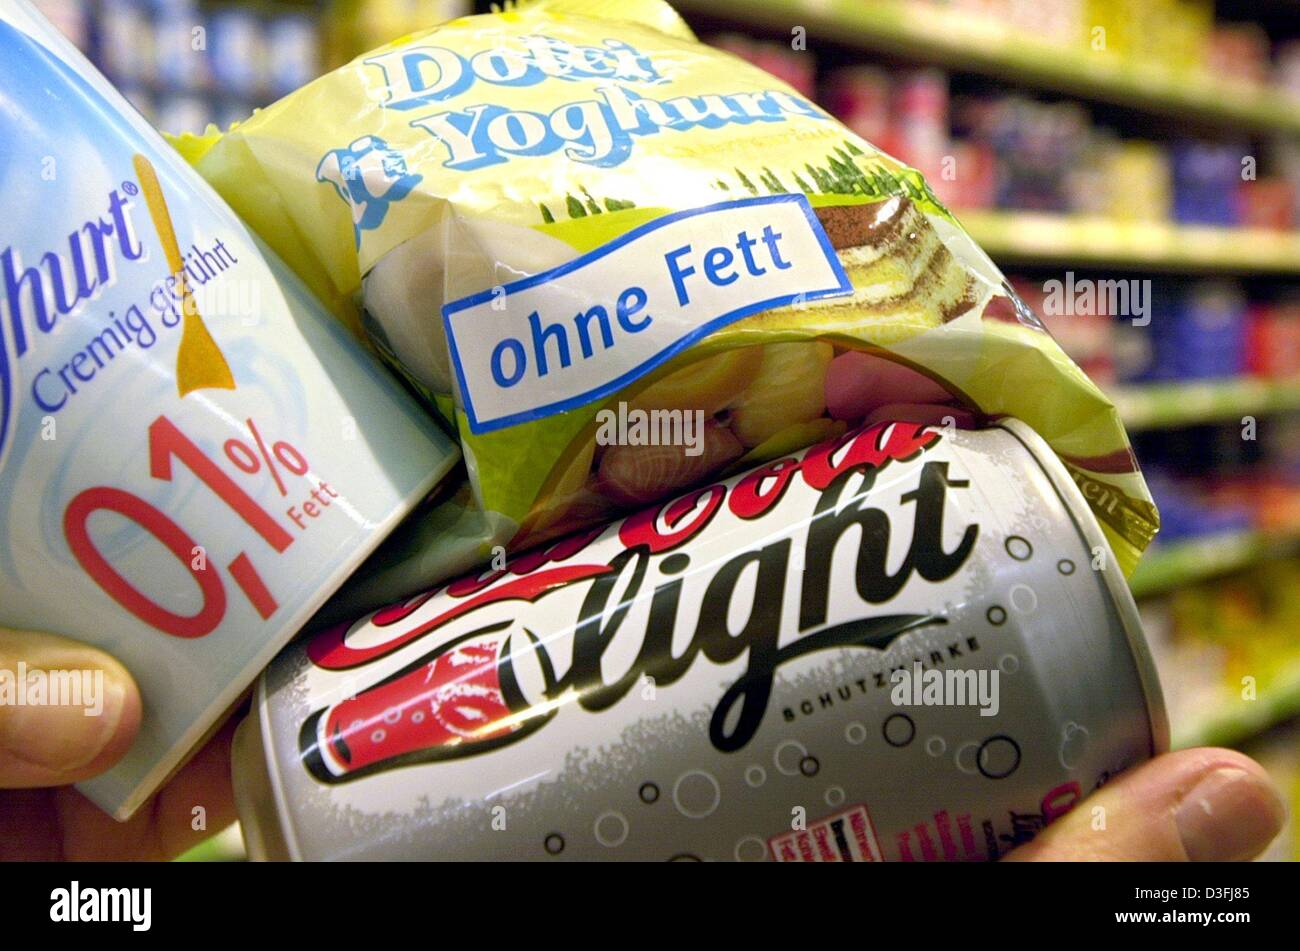 (dpa) - Packaged groceries are being presented in a supermarket in Frankfurt Main, Germany, 16 July 2003. Consumer Stock Photo